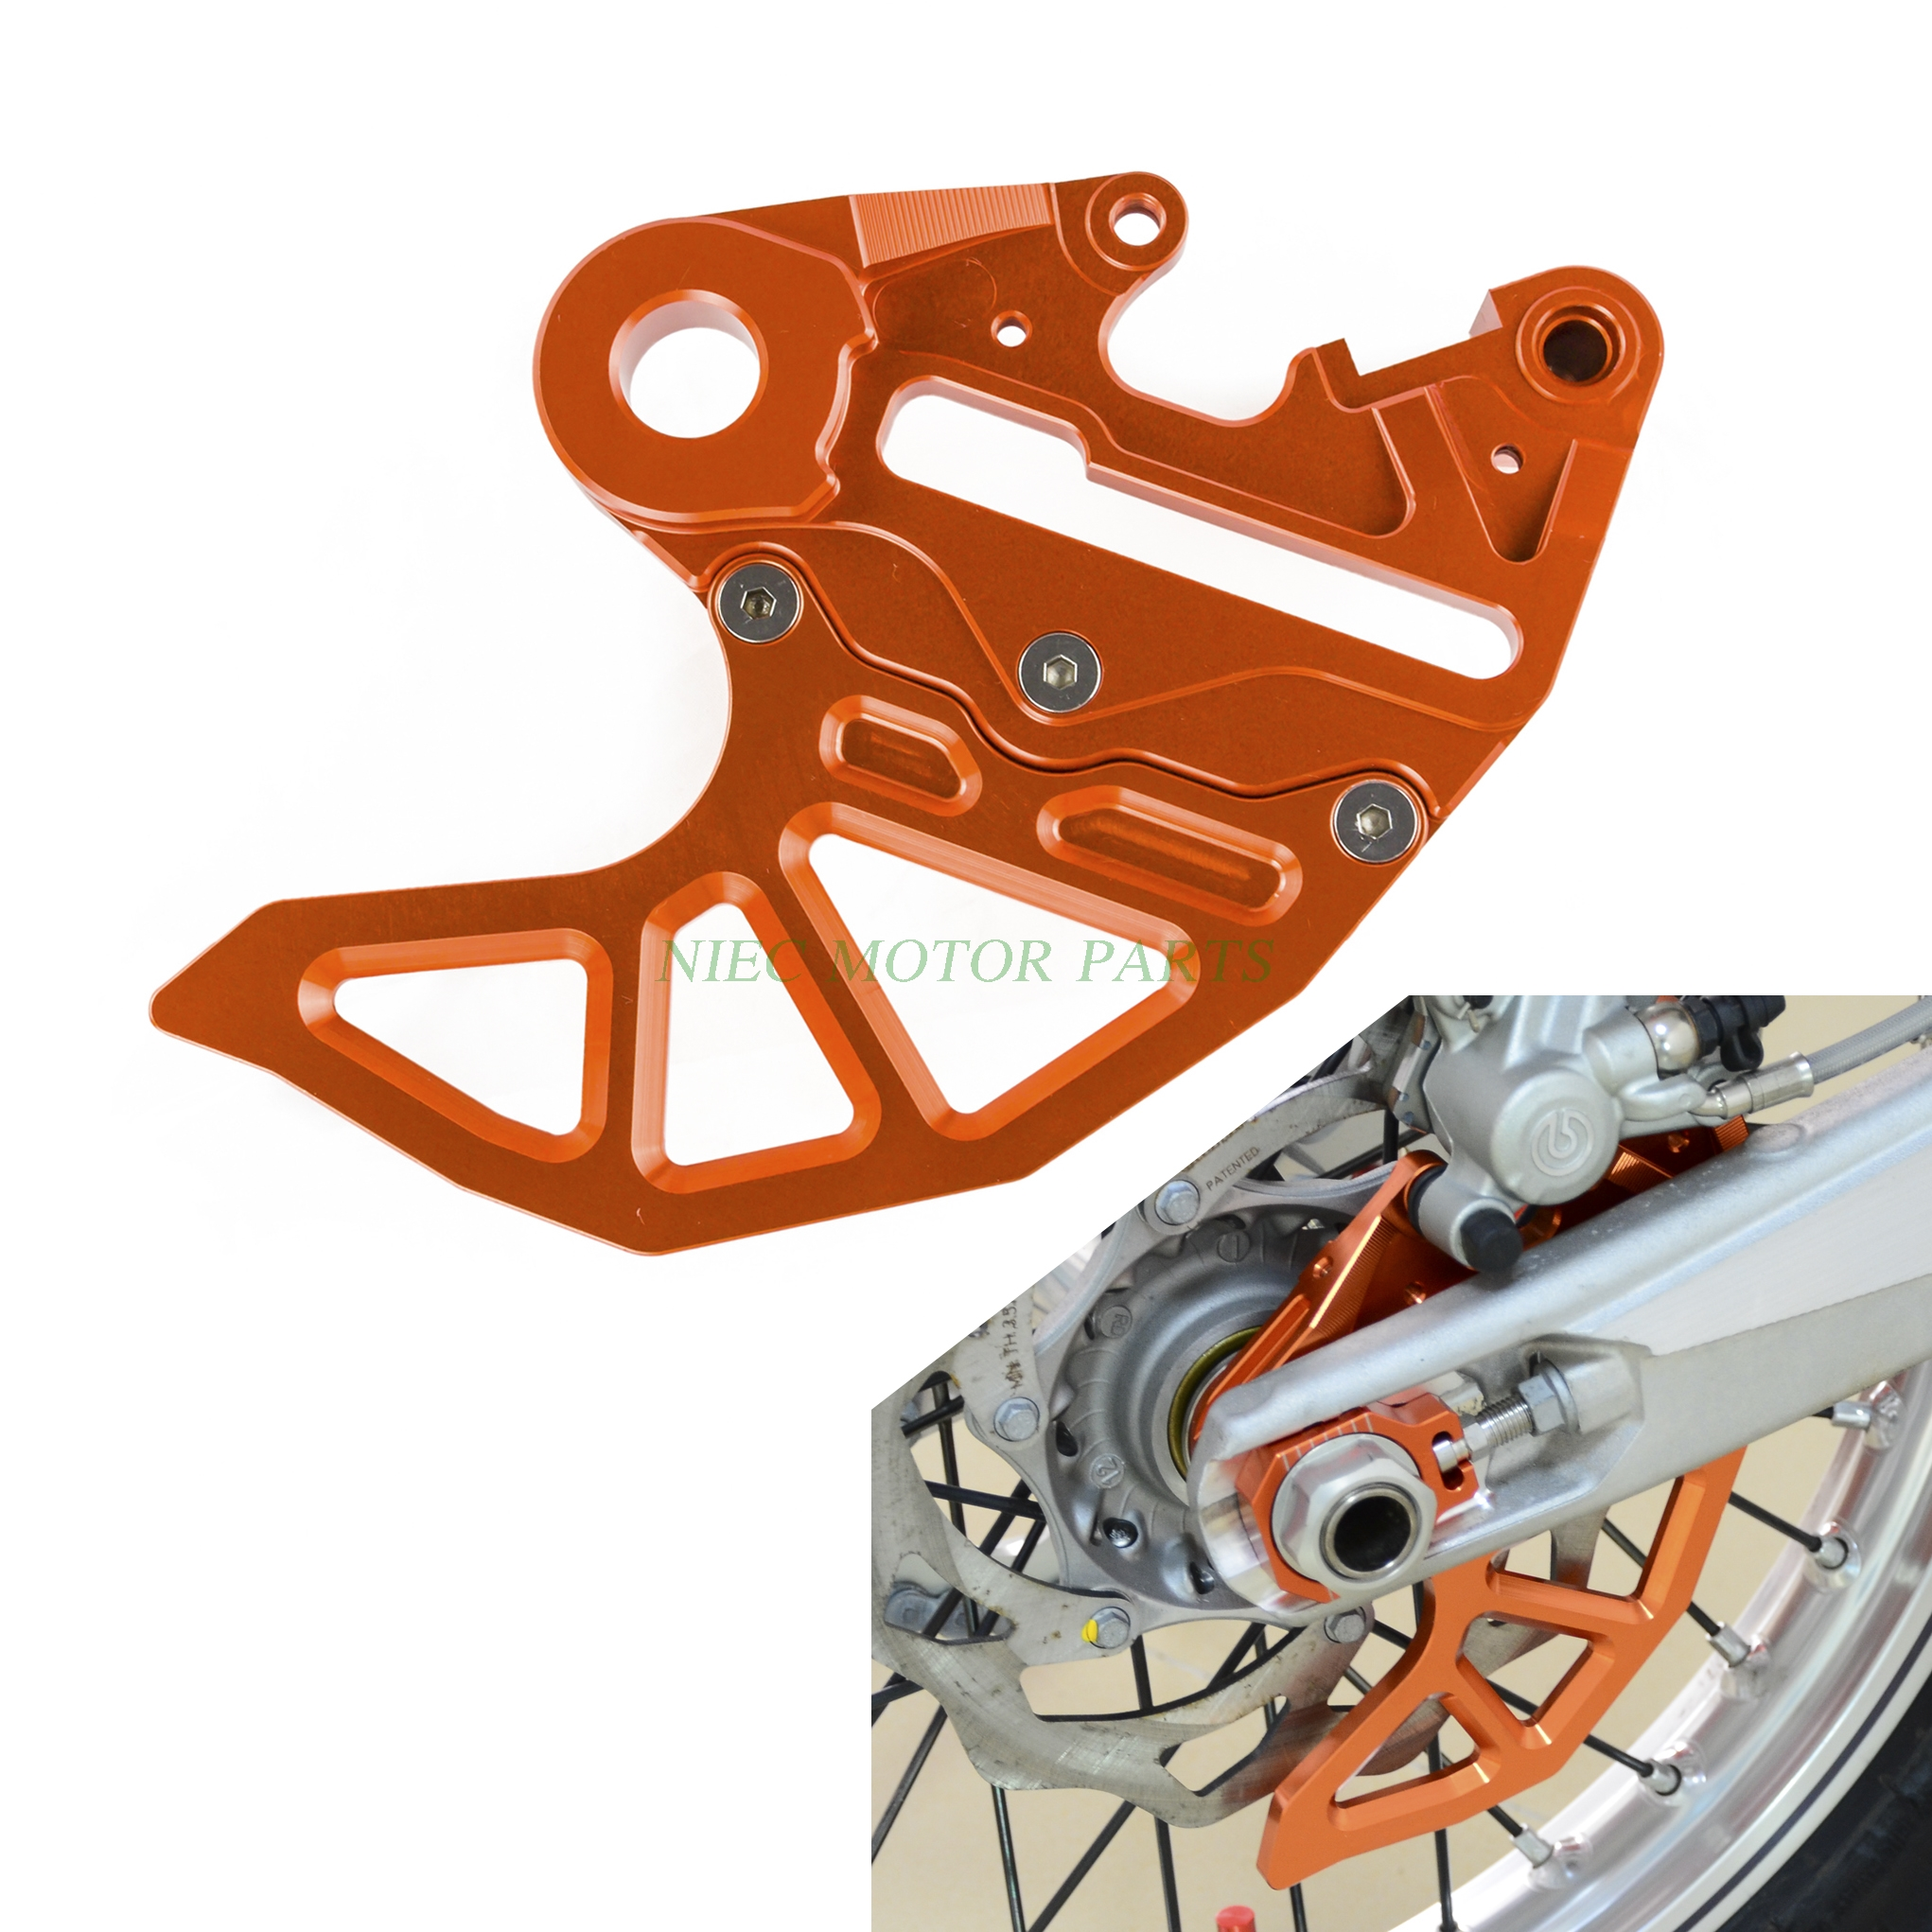 Caliper Support Rear Brake Disc Guard For KTM 125 200 250 300 390 450 530 SX/SX-F EXC/EXC-F/XC-W/XCF-W billet cnc rear brake disc guard w caliper bracket for ktm 125 450 sx sx f smr xc xc f 2013 2014 2015 2016